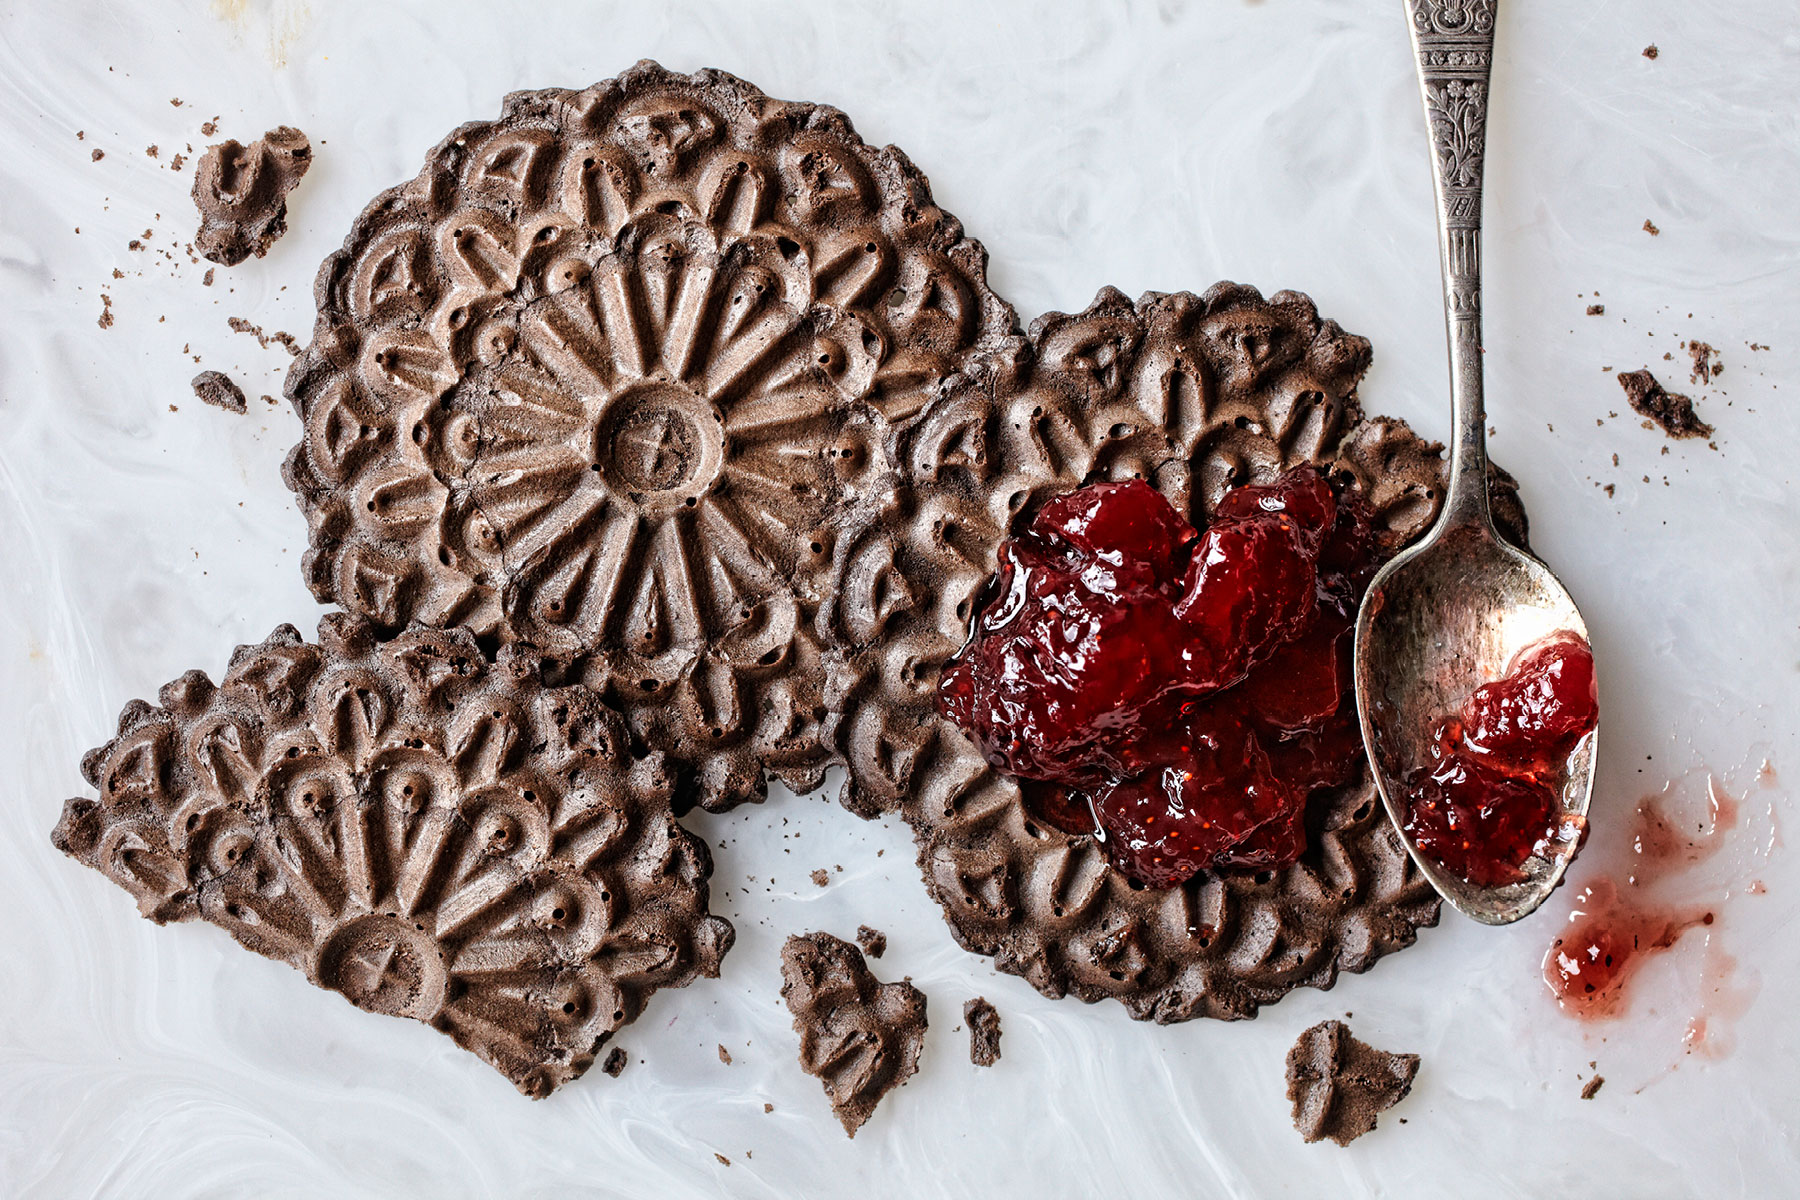 Marx_Food_Photography_Chocolate_jam_cookies